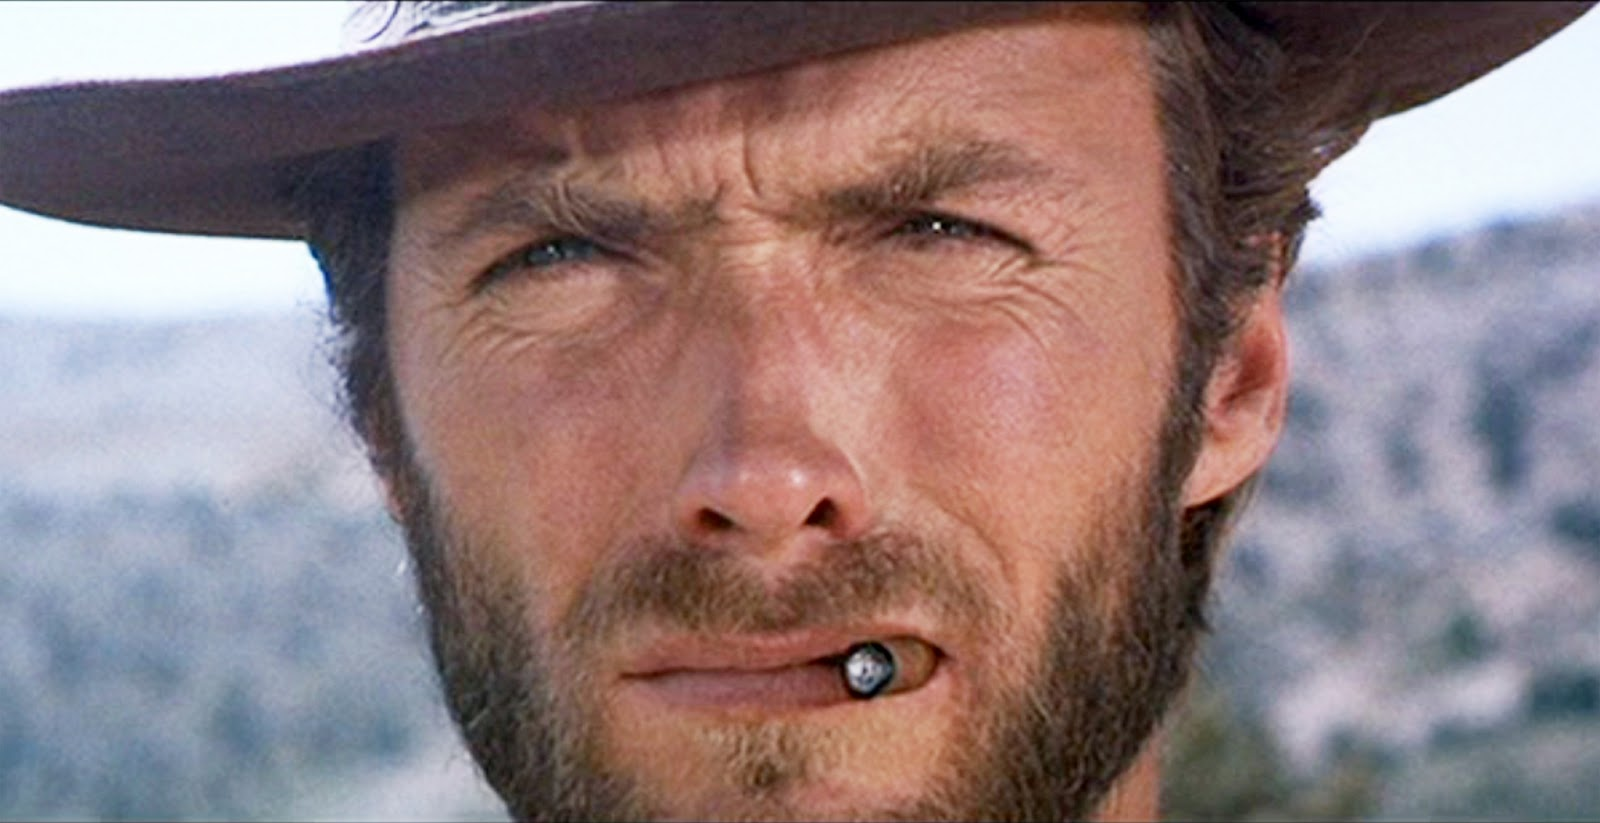 The Good The Bad and the Ugly, Clint Eastwood, movies/tv